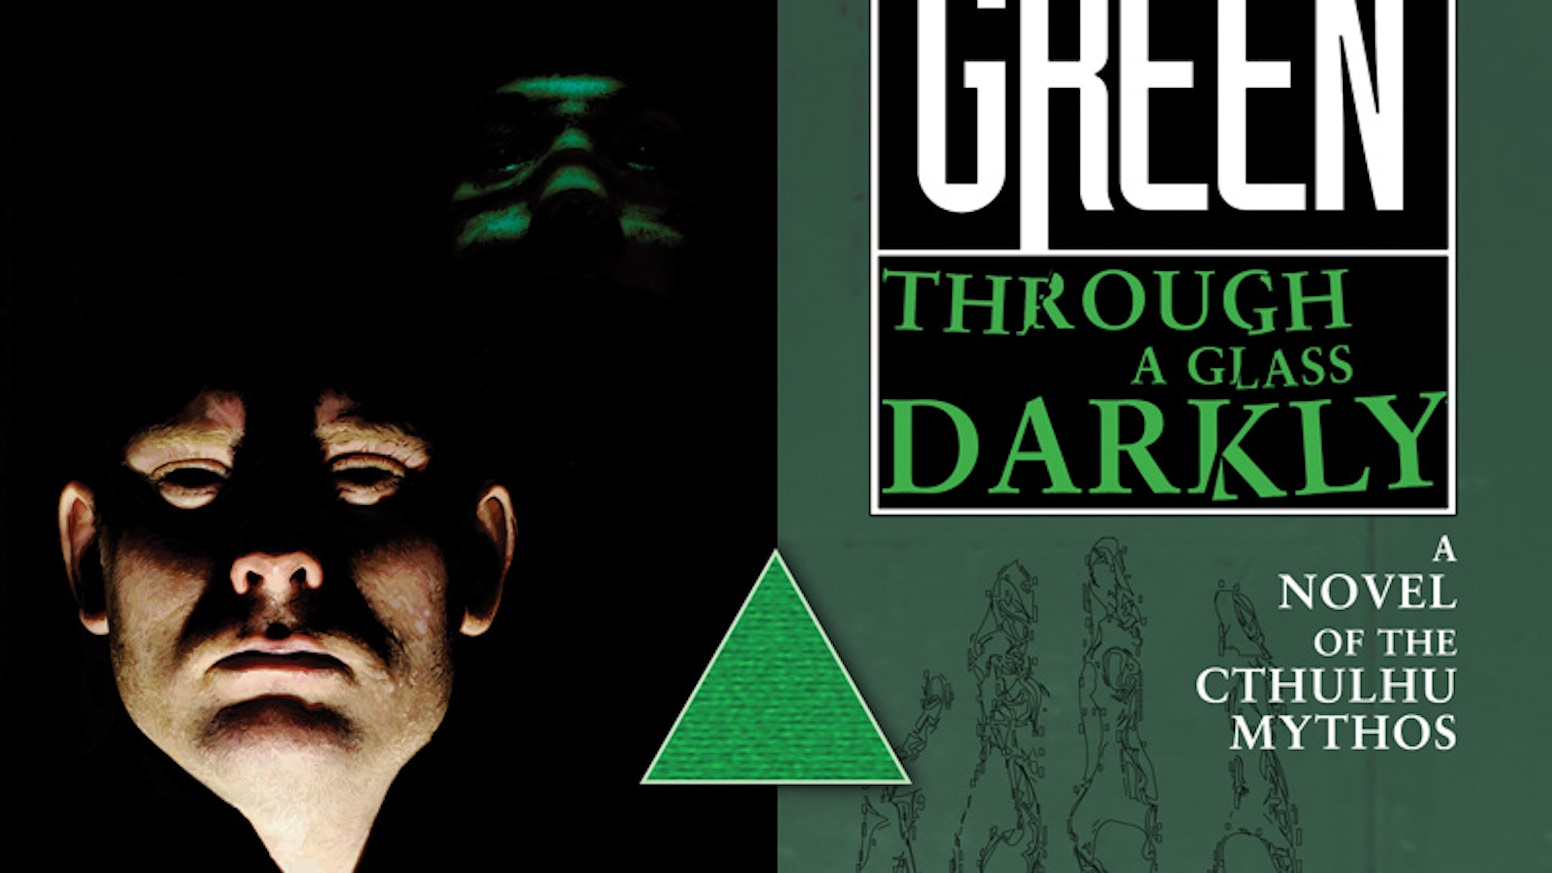 Through a glass darkly a new delta green novel by arc dream through a glass darkly a new delta green novel fandeluxe Image collections